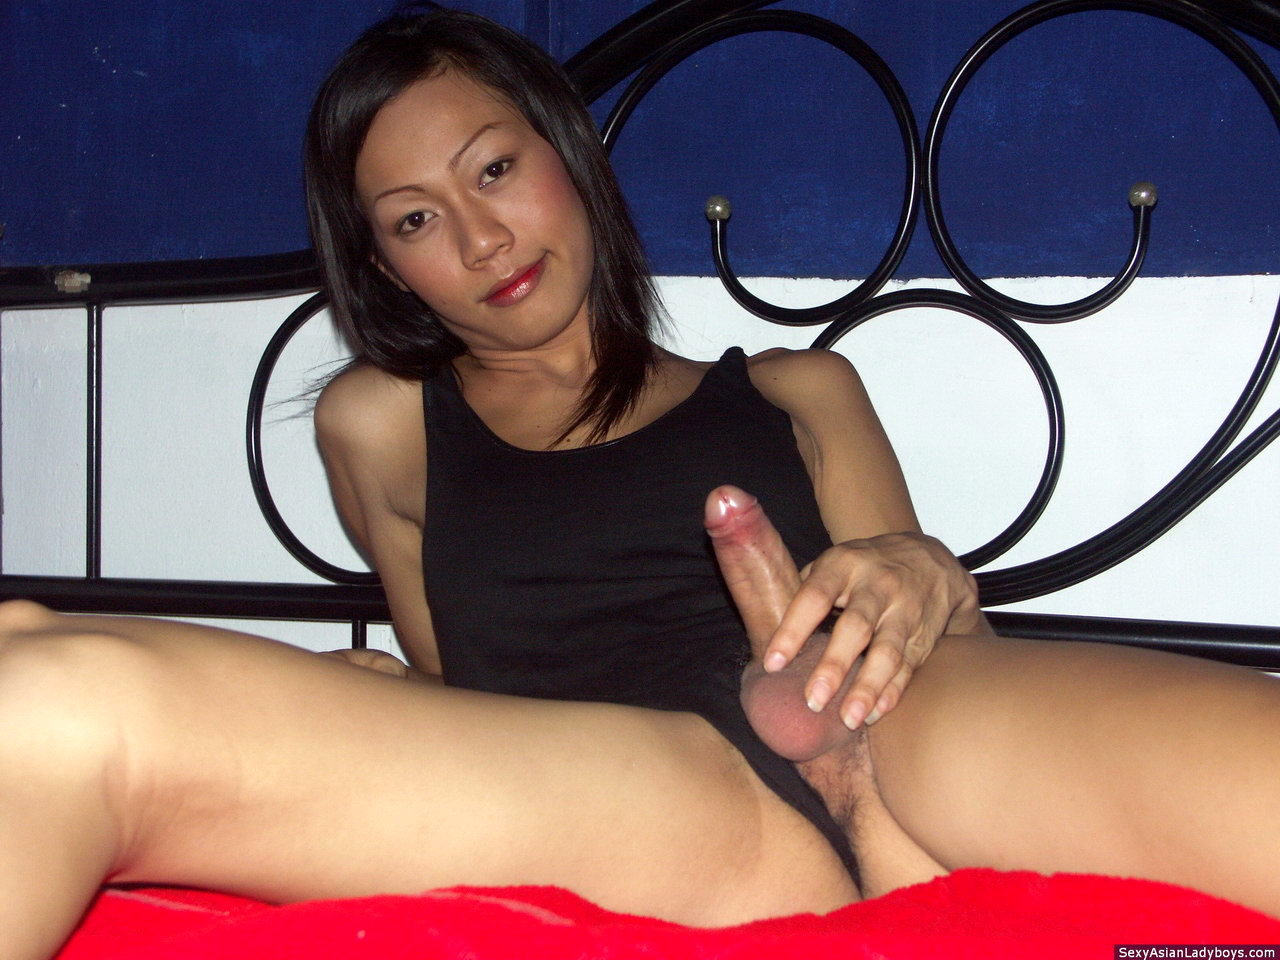 Busty T Girl Playing With Her Rock Raw Dick Until Explosion